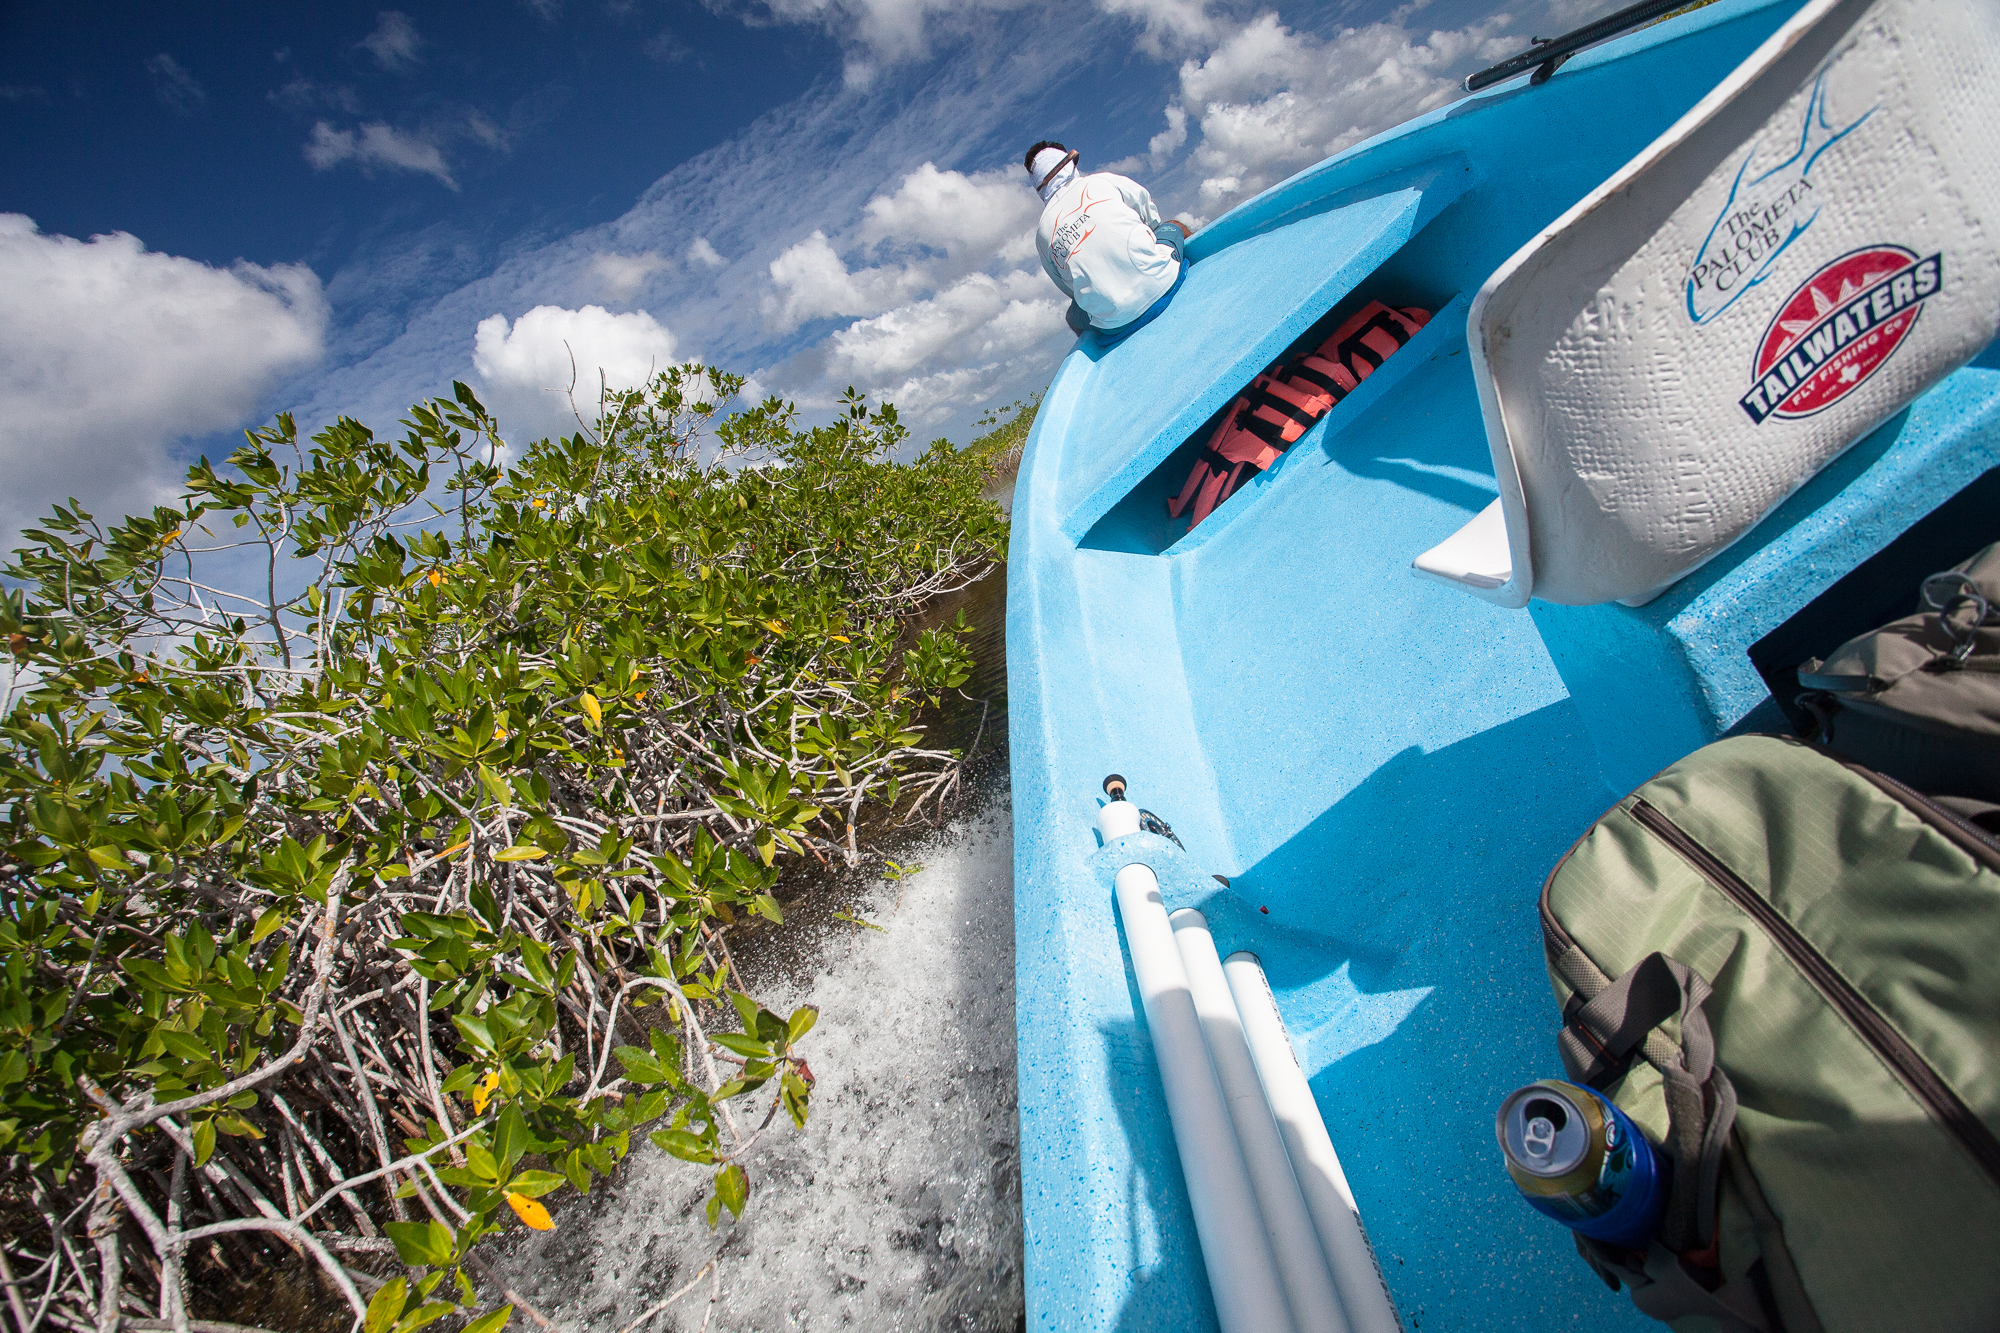 (1/2) More extended diversions into freshwater laden channels involve exhilarating panga rides through the mangrove, in search of tarpon and snook (photo: Chad Shmukler).